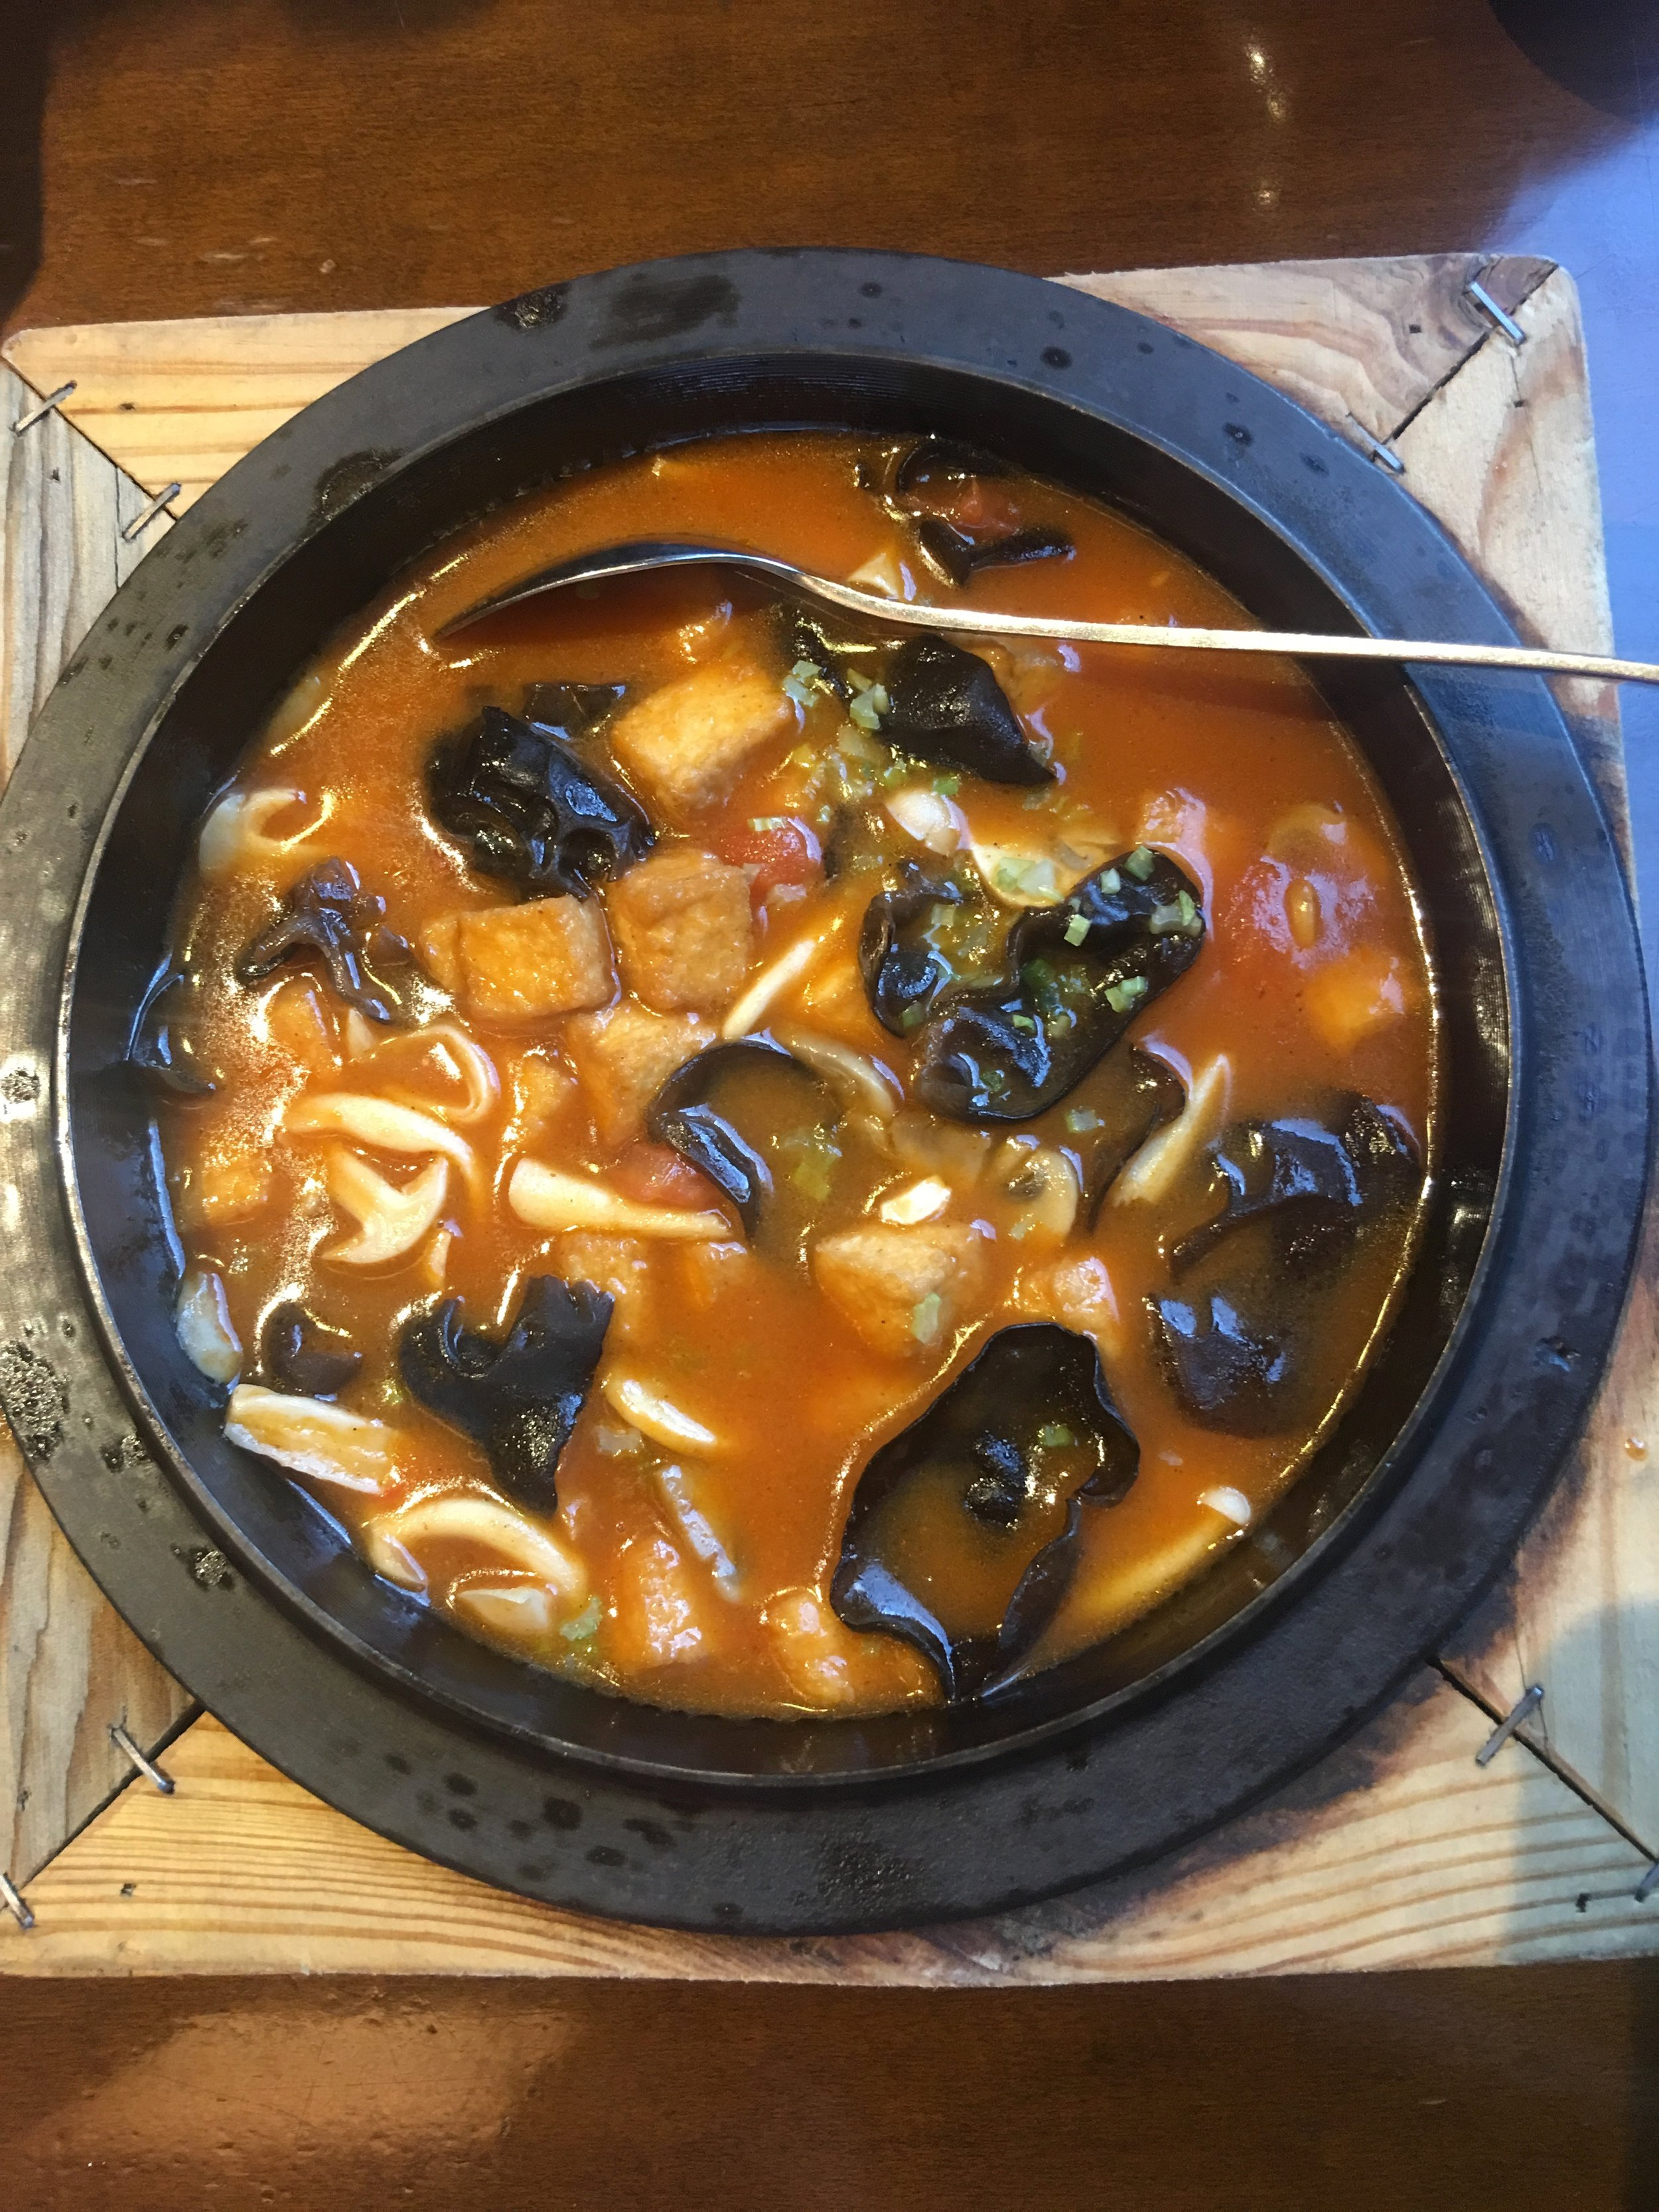 I love the consistency of Chinese curry. Can someone teach me how to make it?